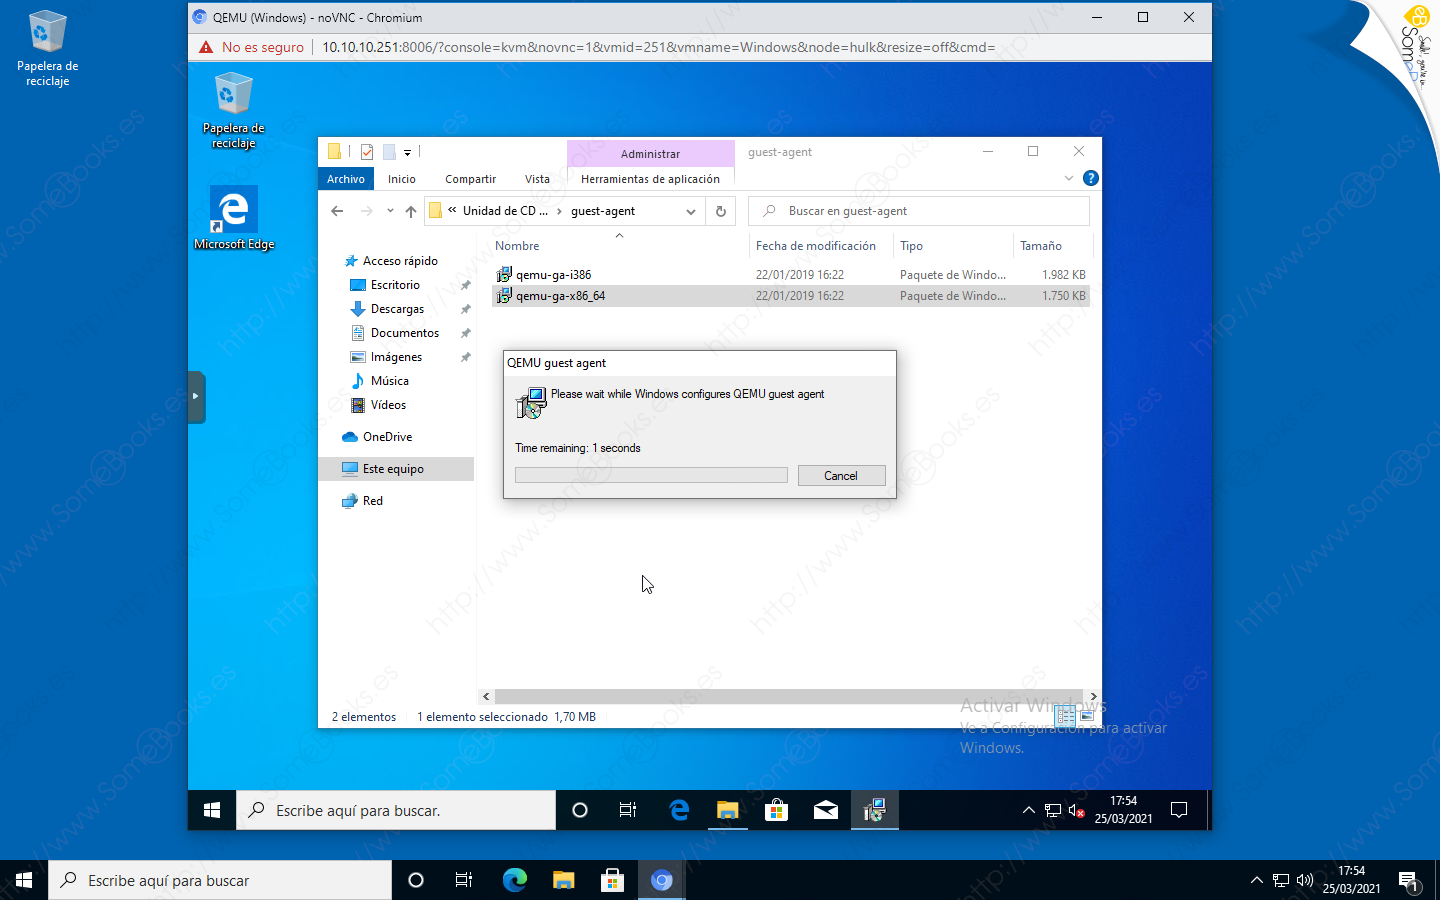 Instalar-Windows-10-en-una-maquina-virtual-sobre-Proxmox-VE-018